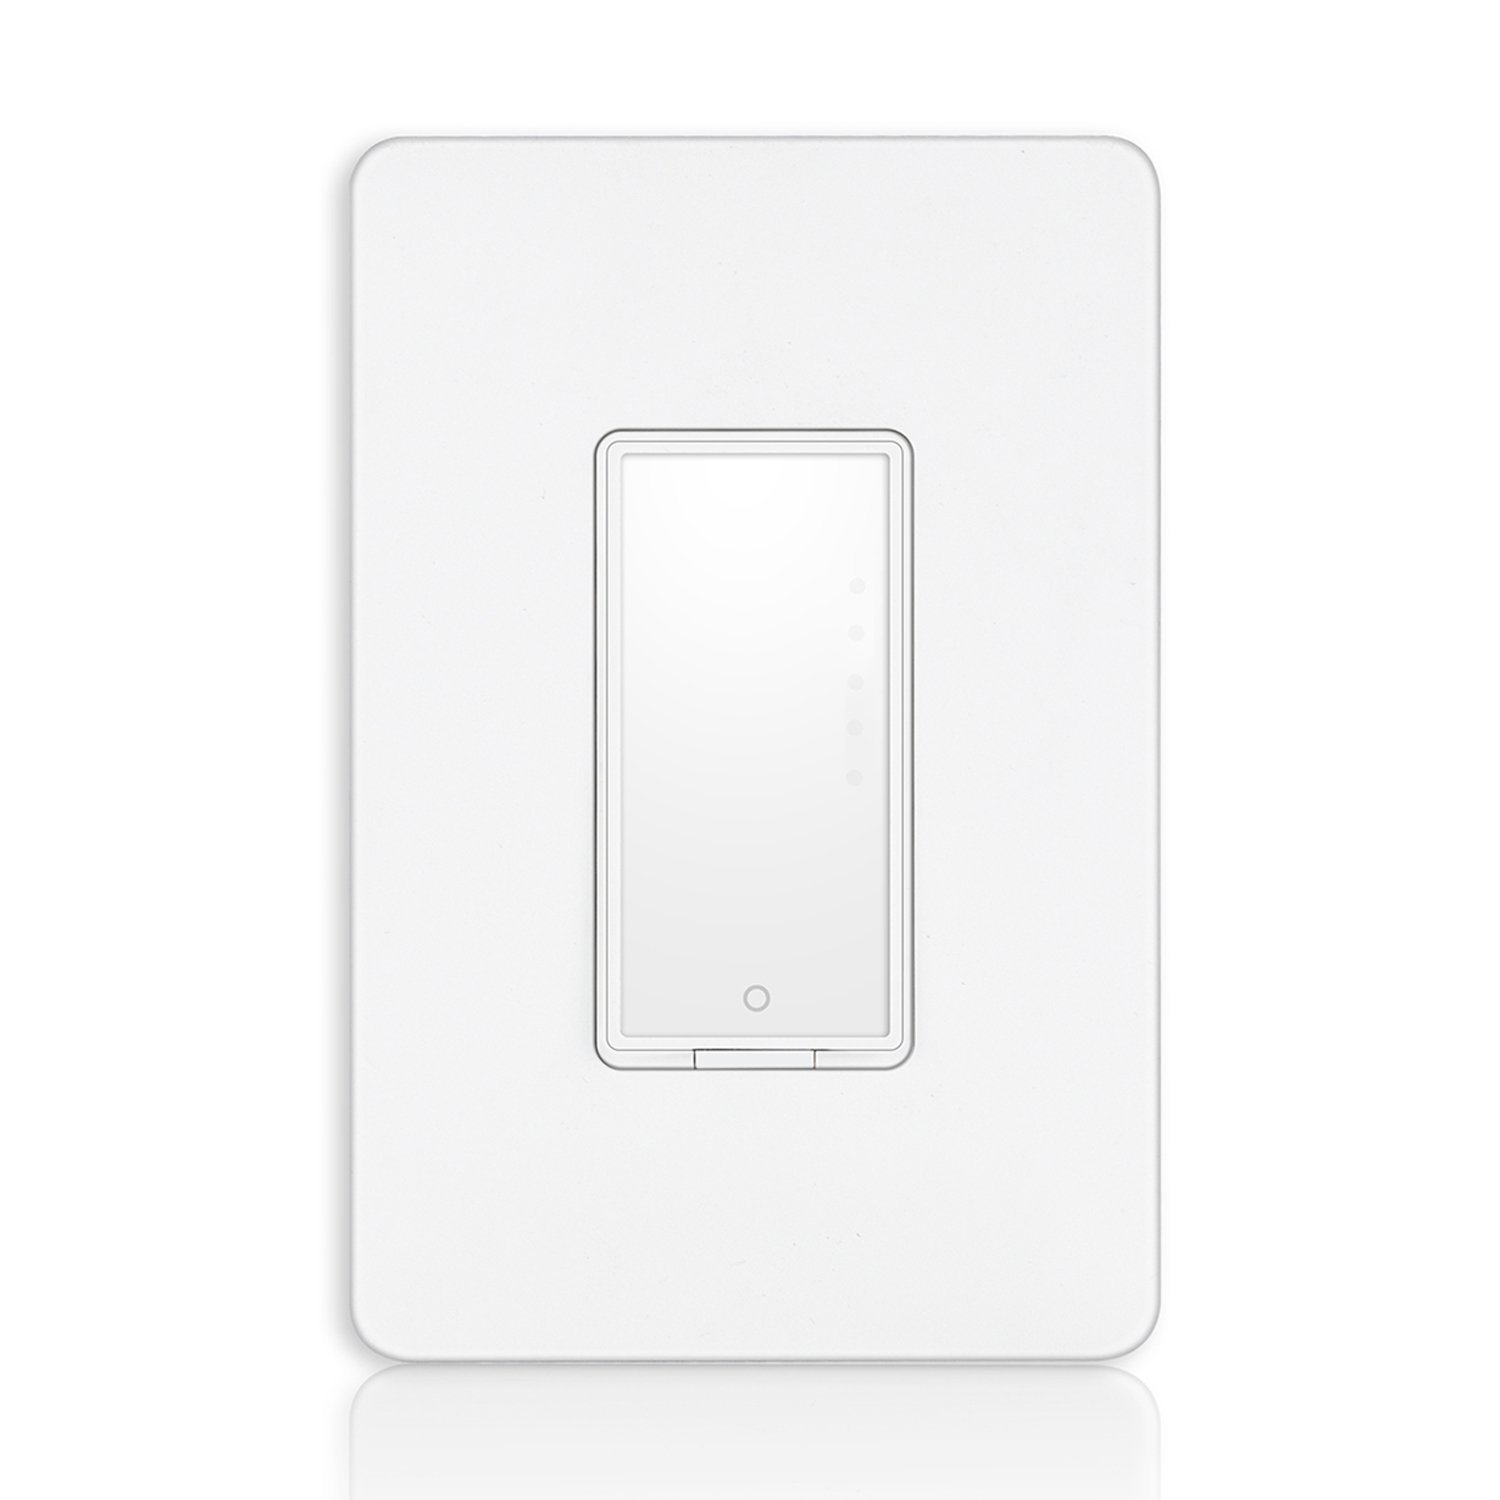 Smart Switch by TMKJ | Smart Outlet Compatible with Alexa, Google Home, IFTTT | White Mini WiFi Smart Plug | Smart Home Devices For Voice Control | No Hub Required (1)